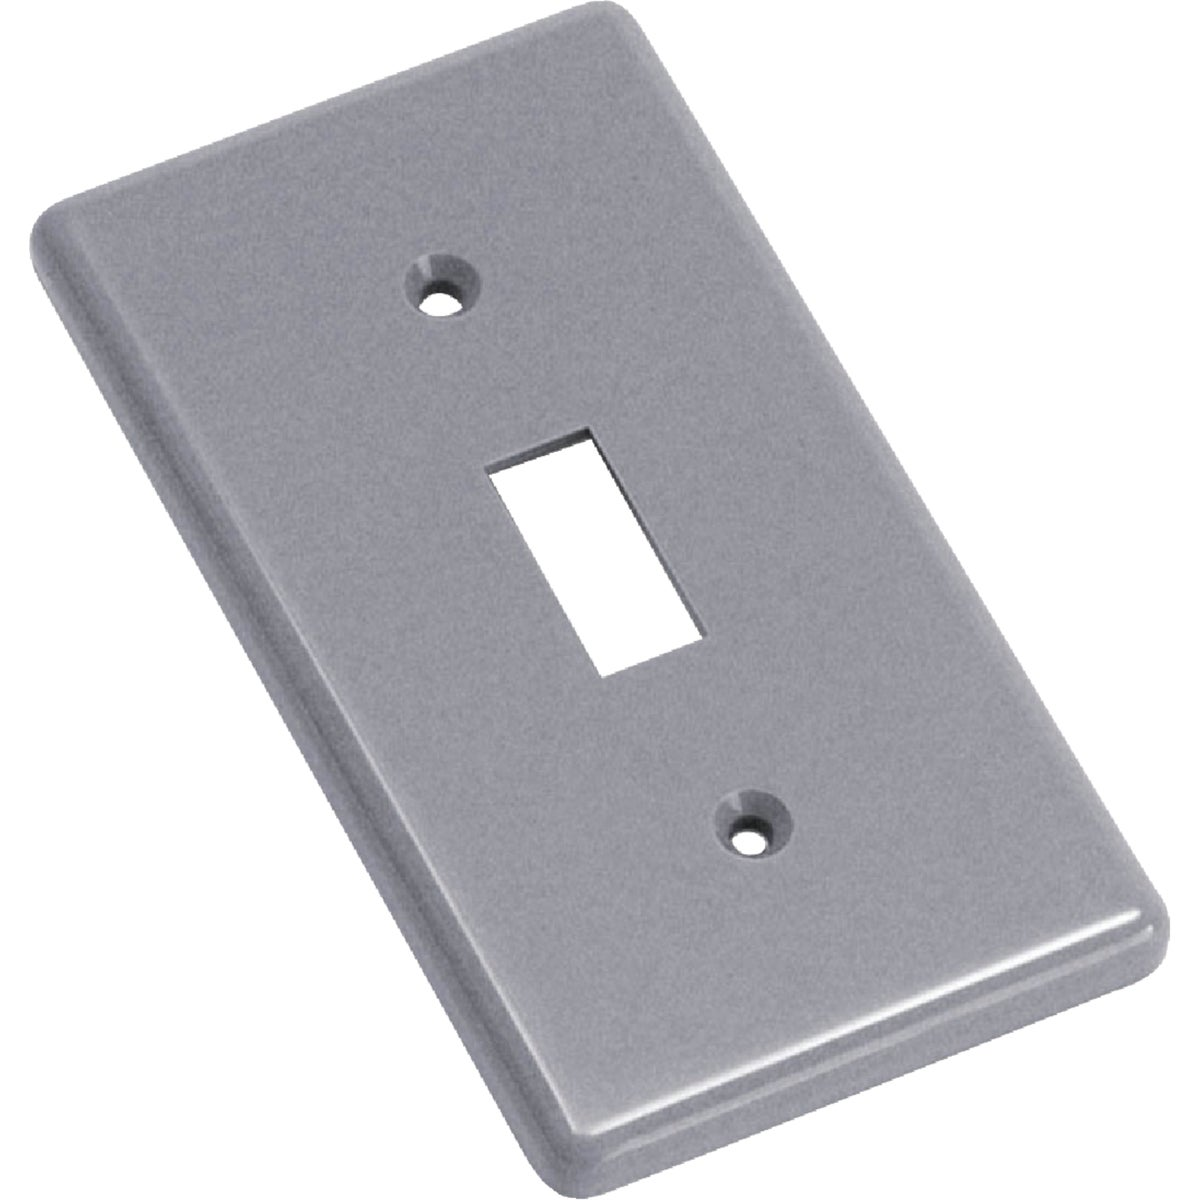 Handy Box Switch Cover